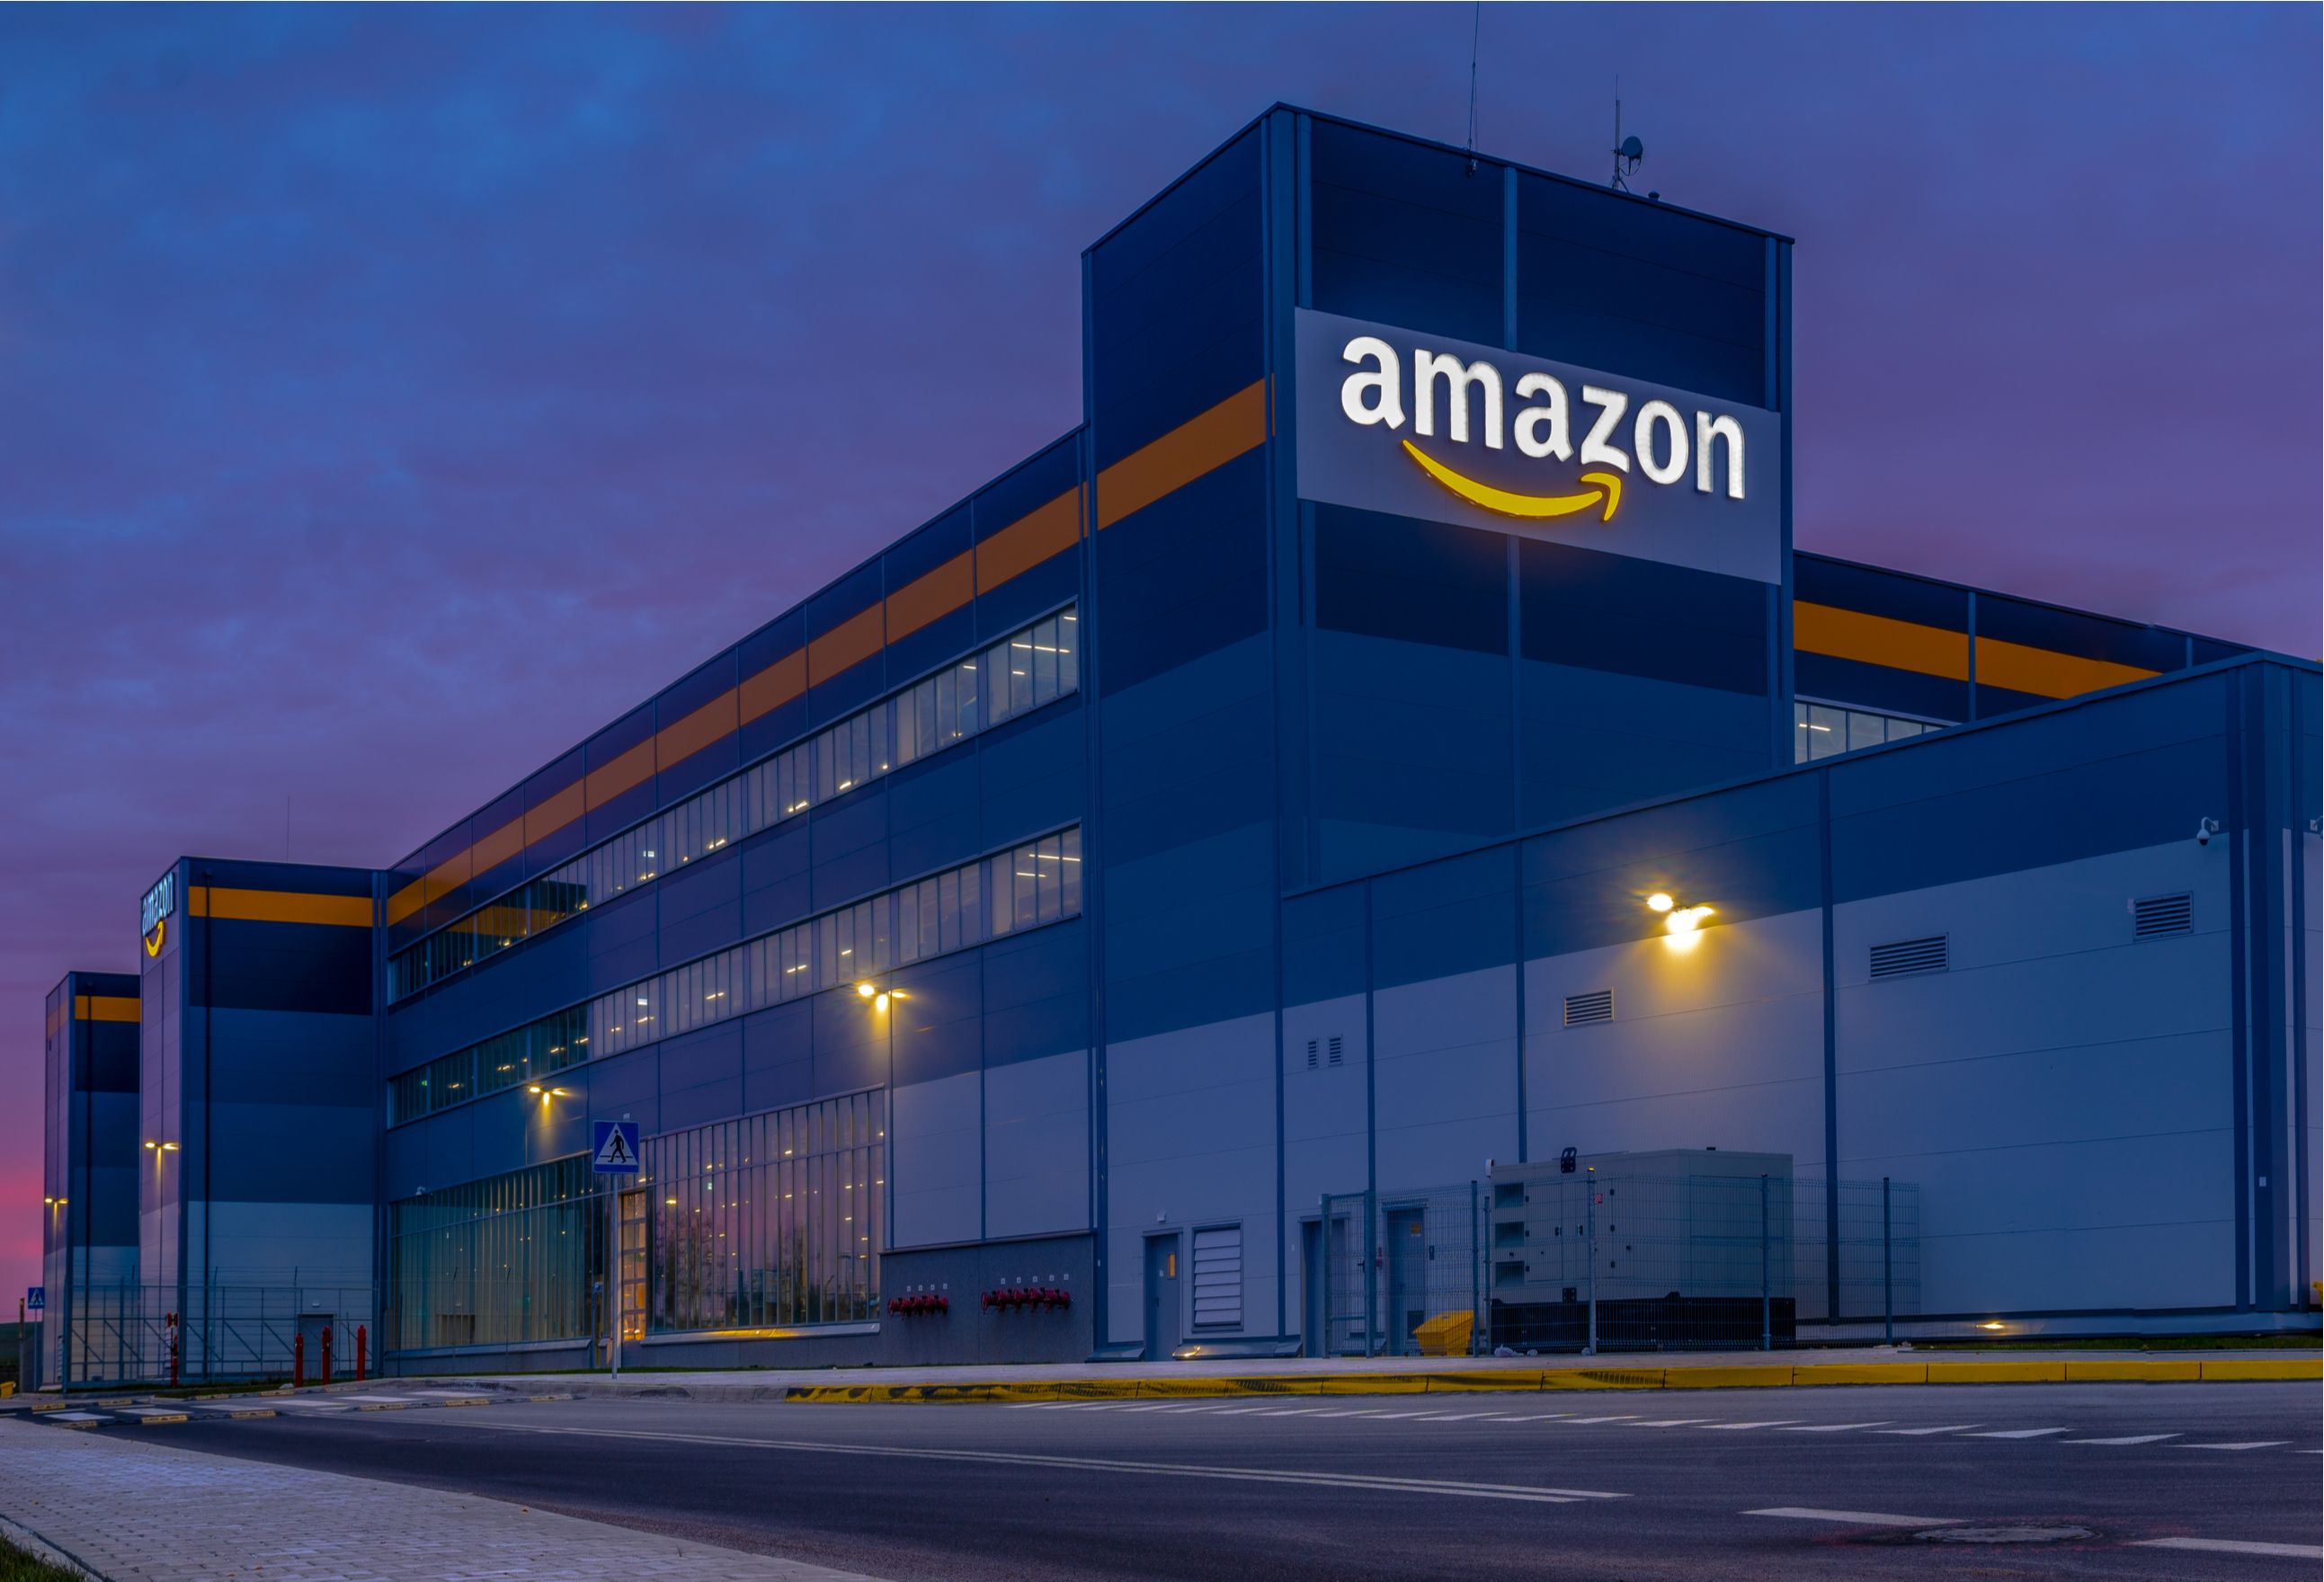 Amazon inventory value swells to deal with 1-day delivery